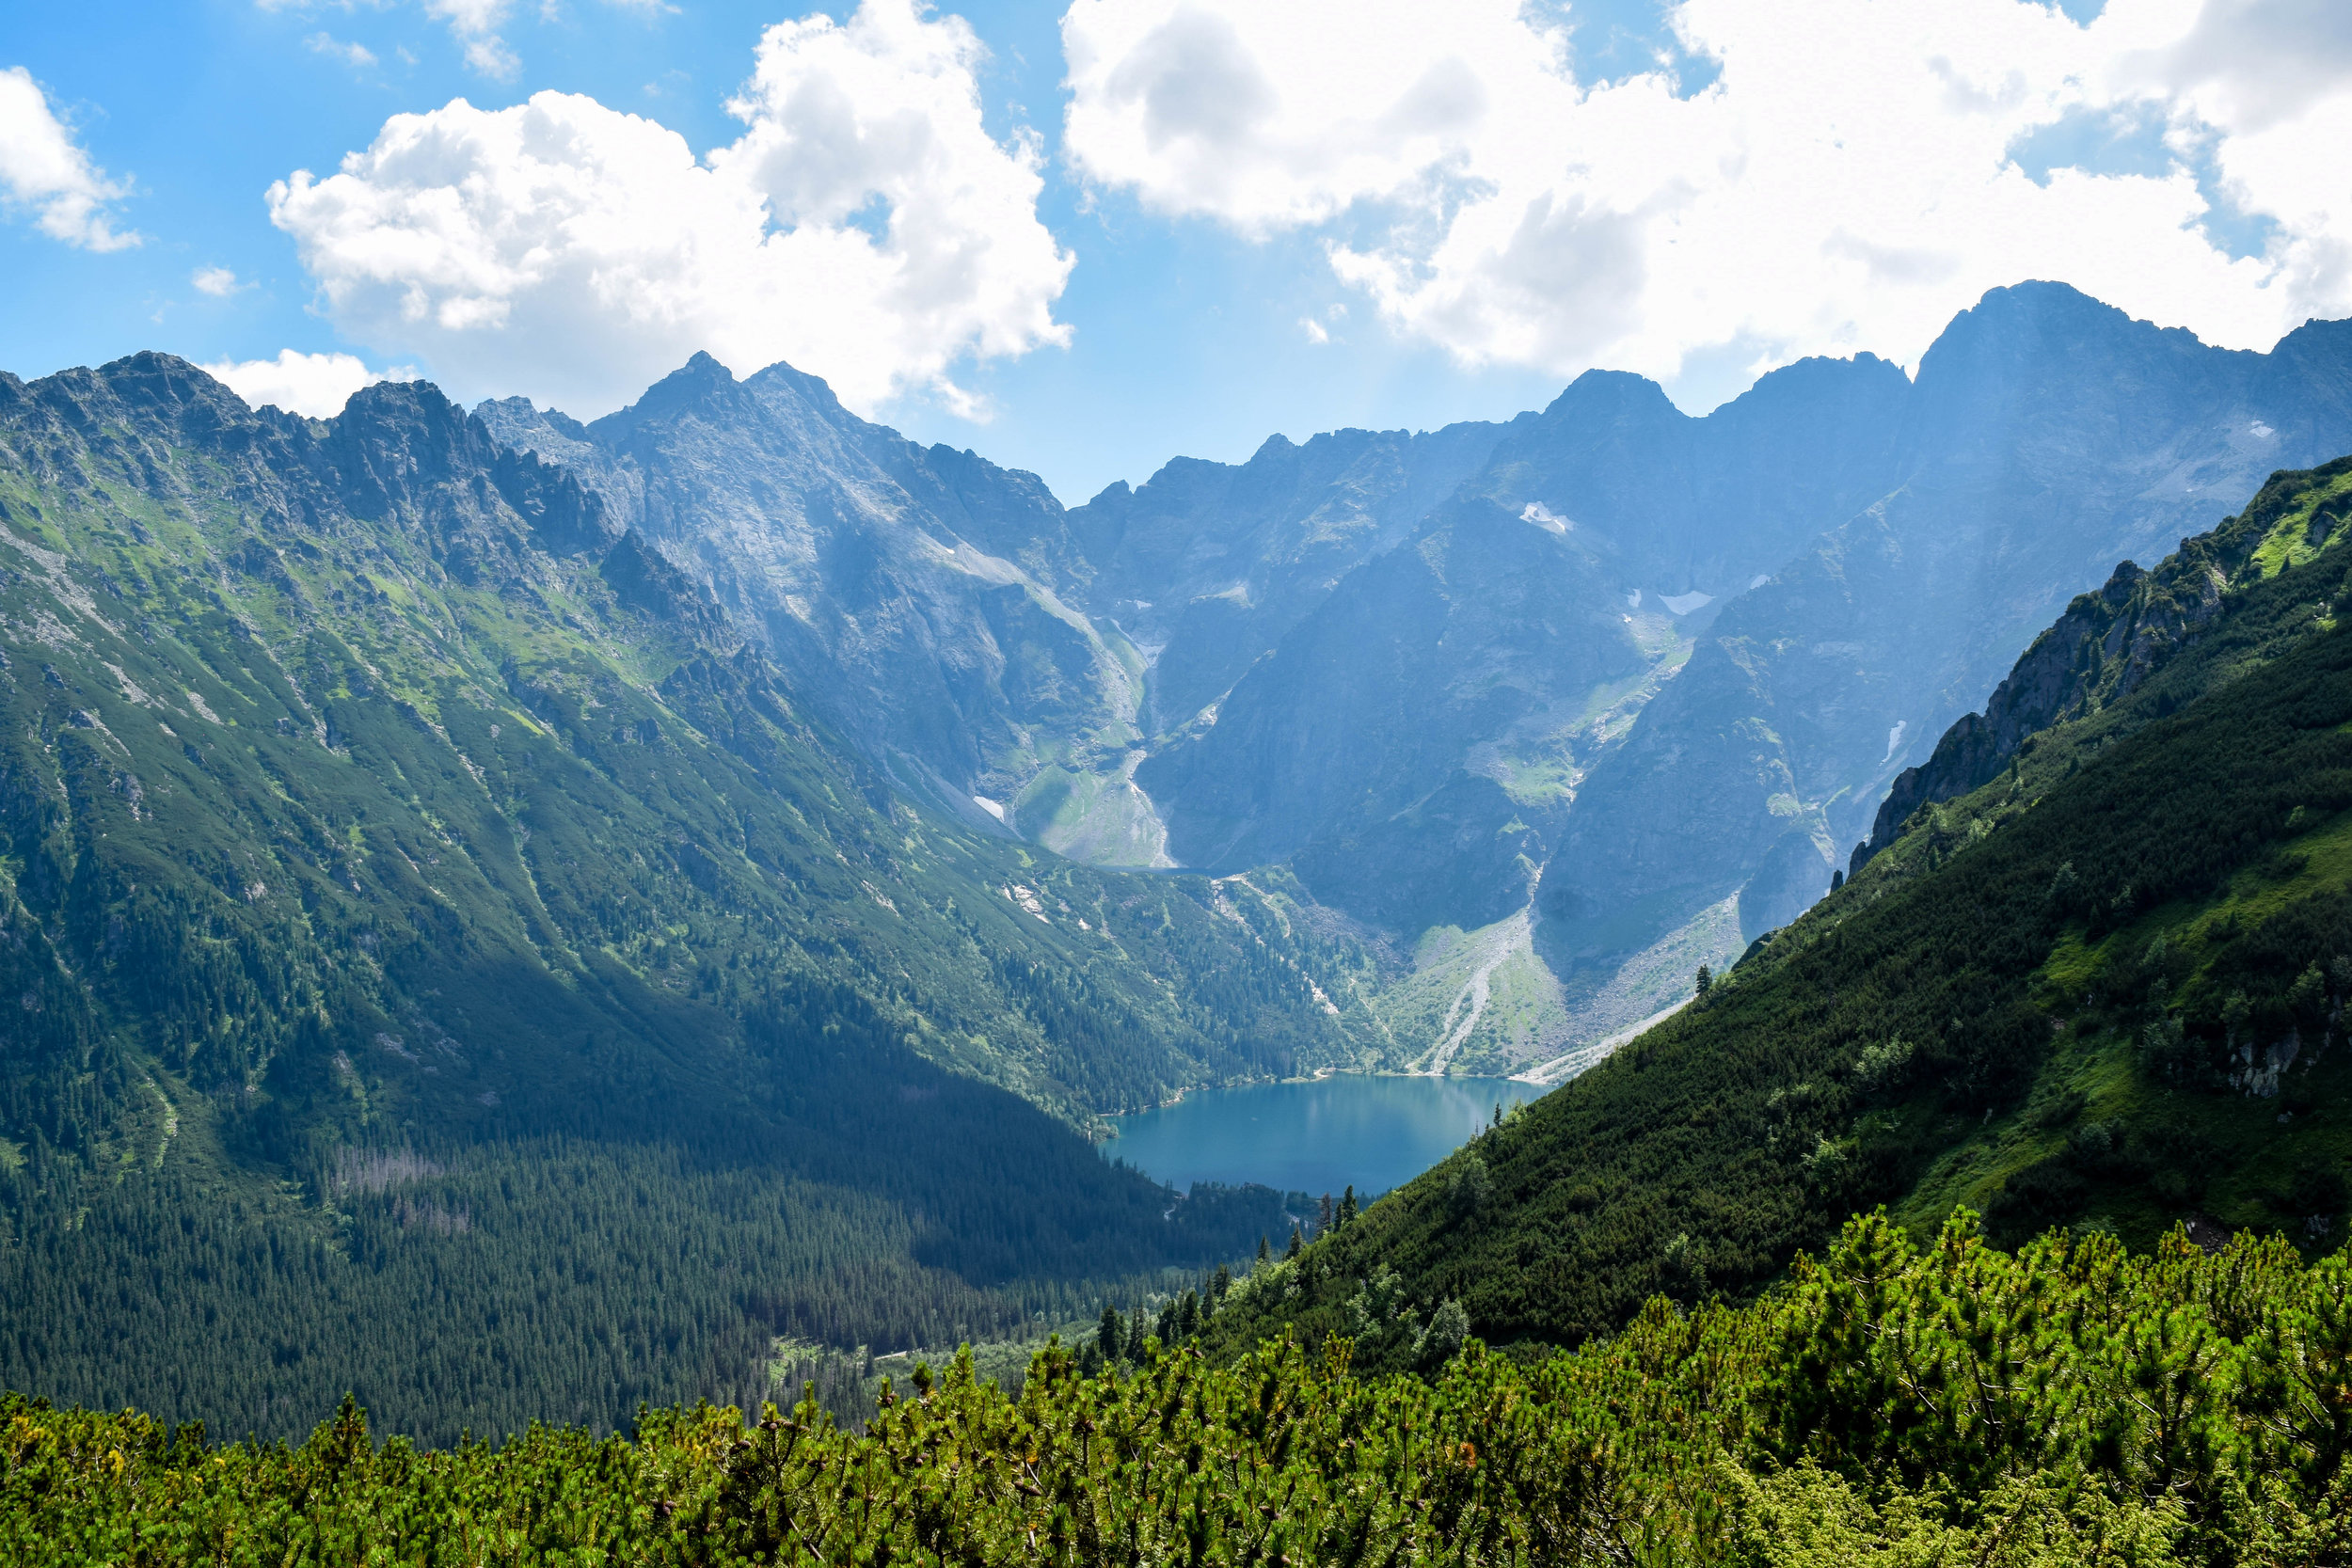 View of Morskie Oko from one of the mountain peaks we ascended